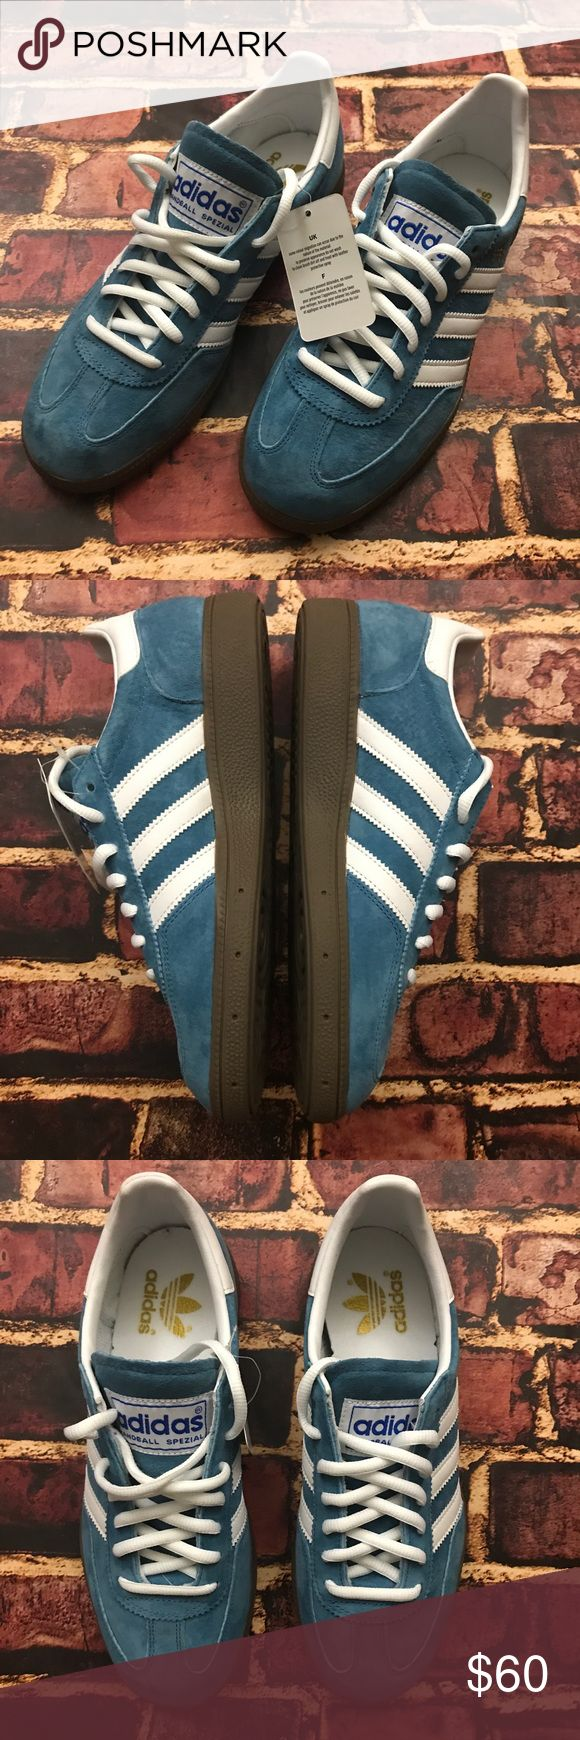 NWT adidas Handball Spezial Men's Size 7 Shoes Brand New without Box. Original adidas tags still attached. Zero flaws! Nice soft suede. See photos for details. Thanks! adidas Shoes Athletic Shoes